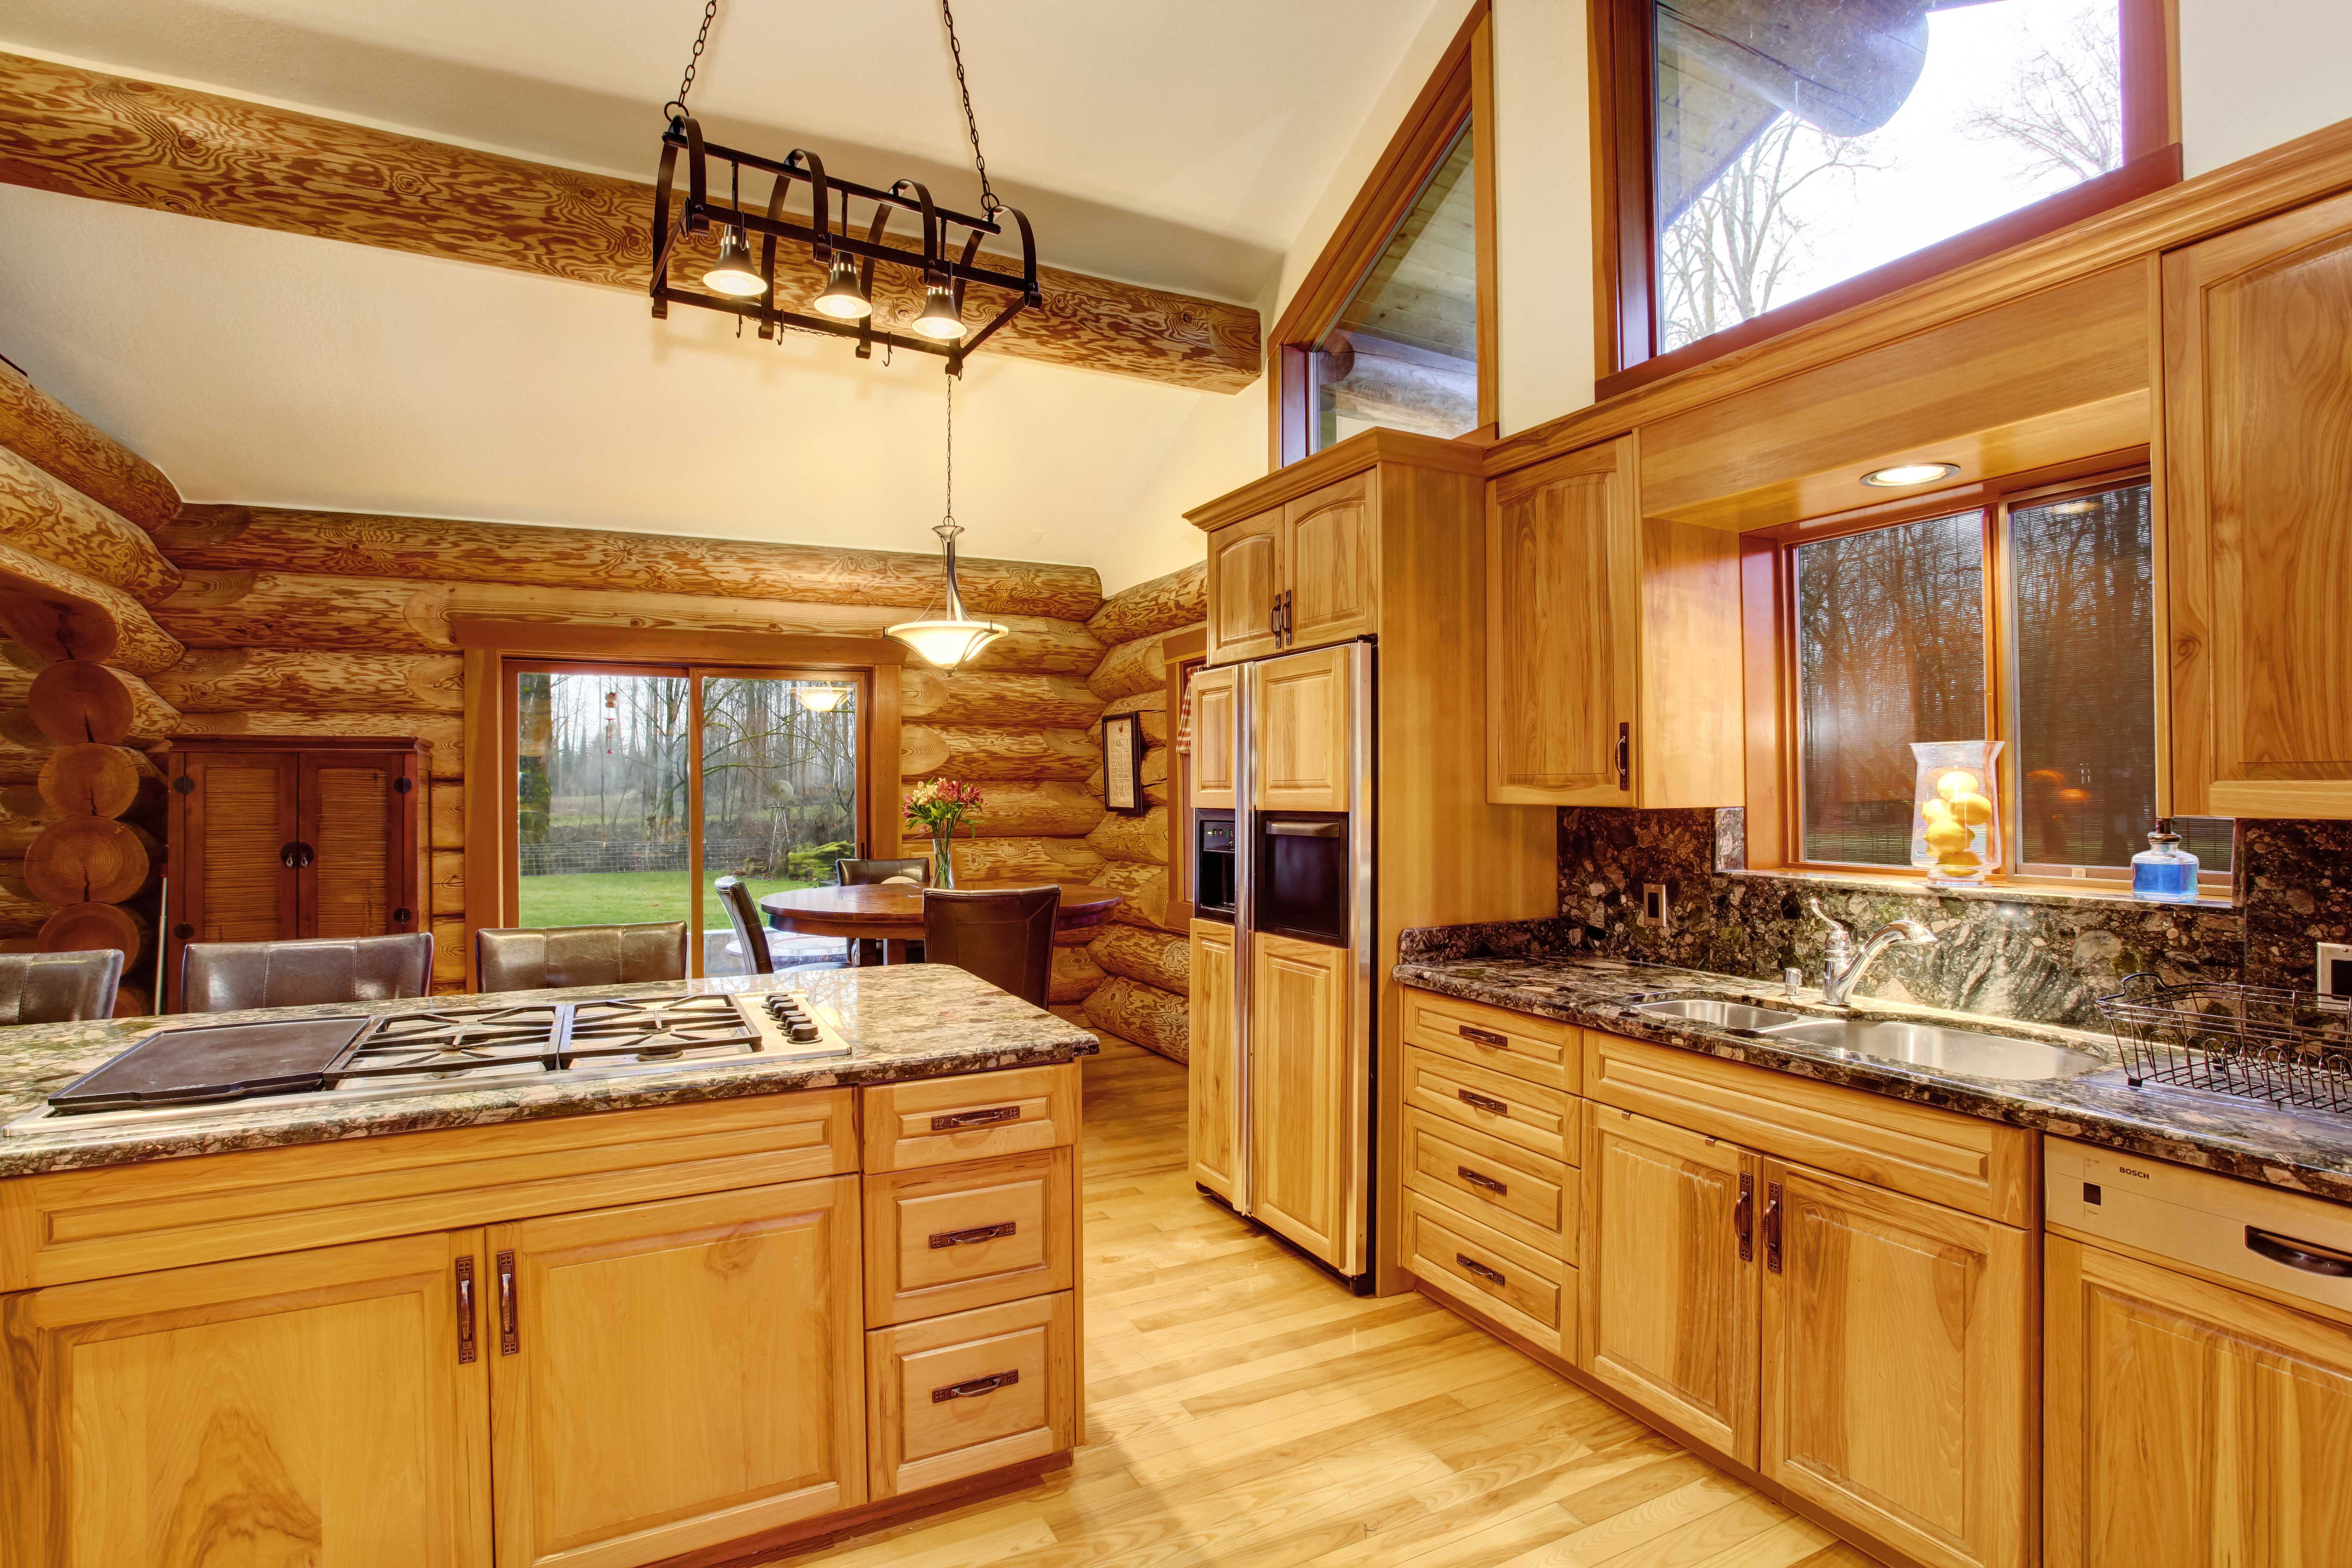 log cabin custom made kitchen that has been recently remodeled